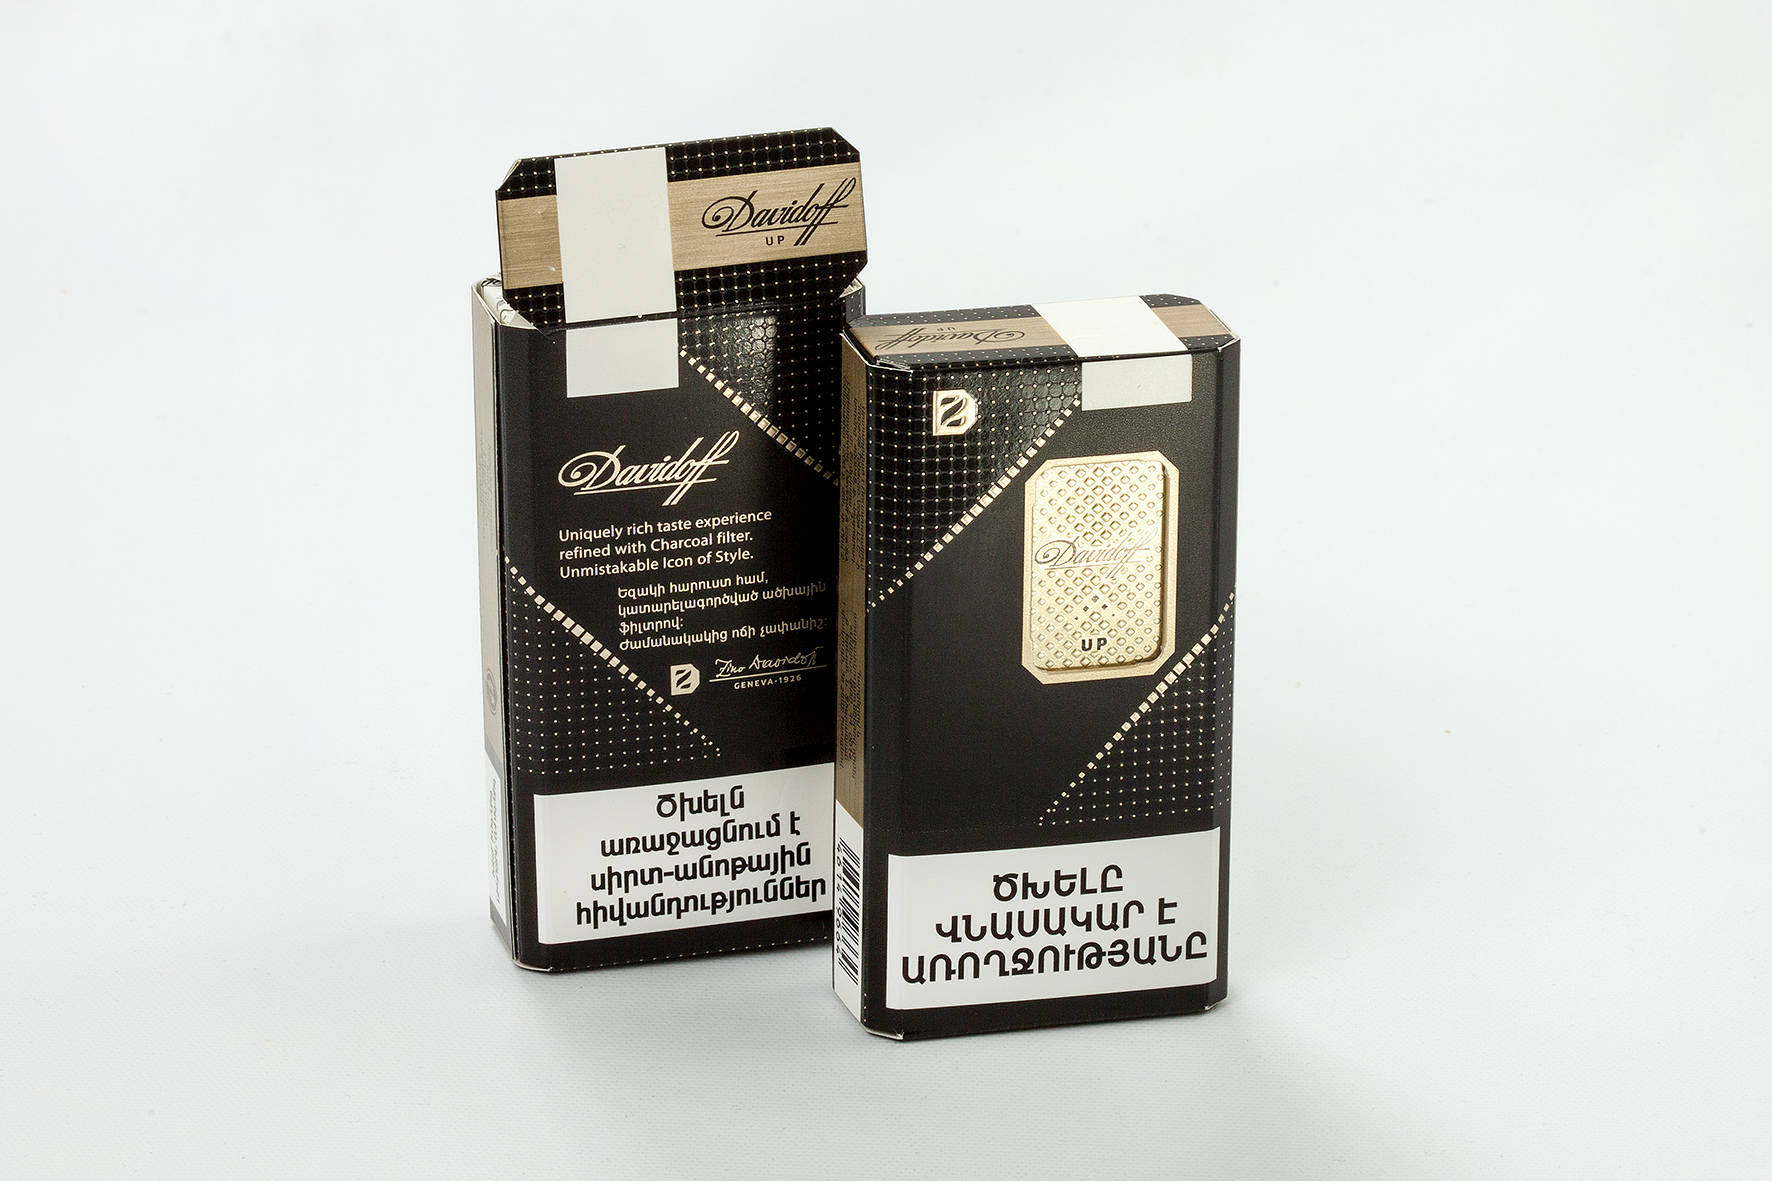 Davidoff Black GlideTec (for Armenia)